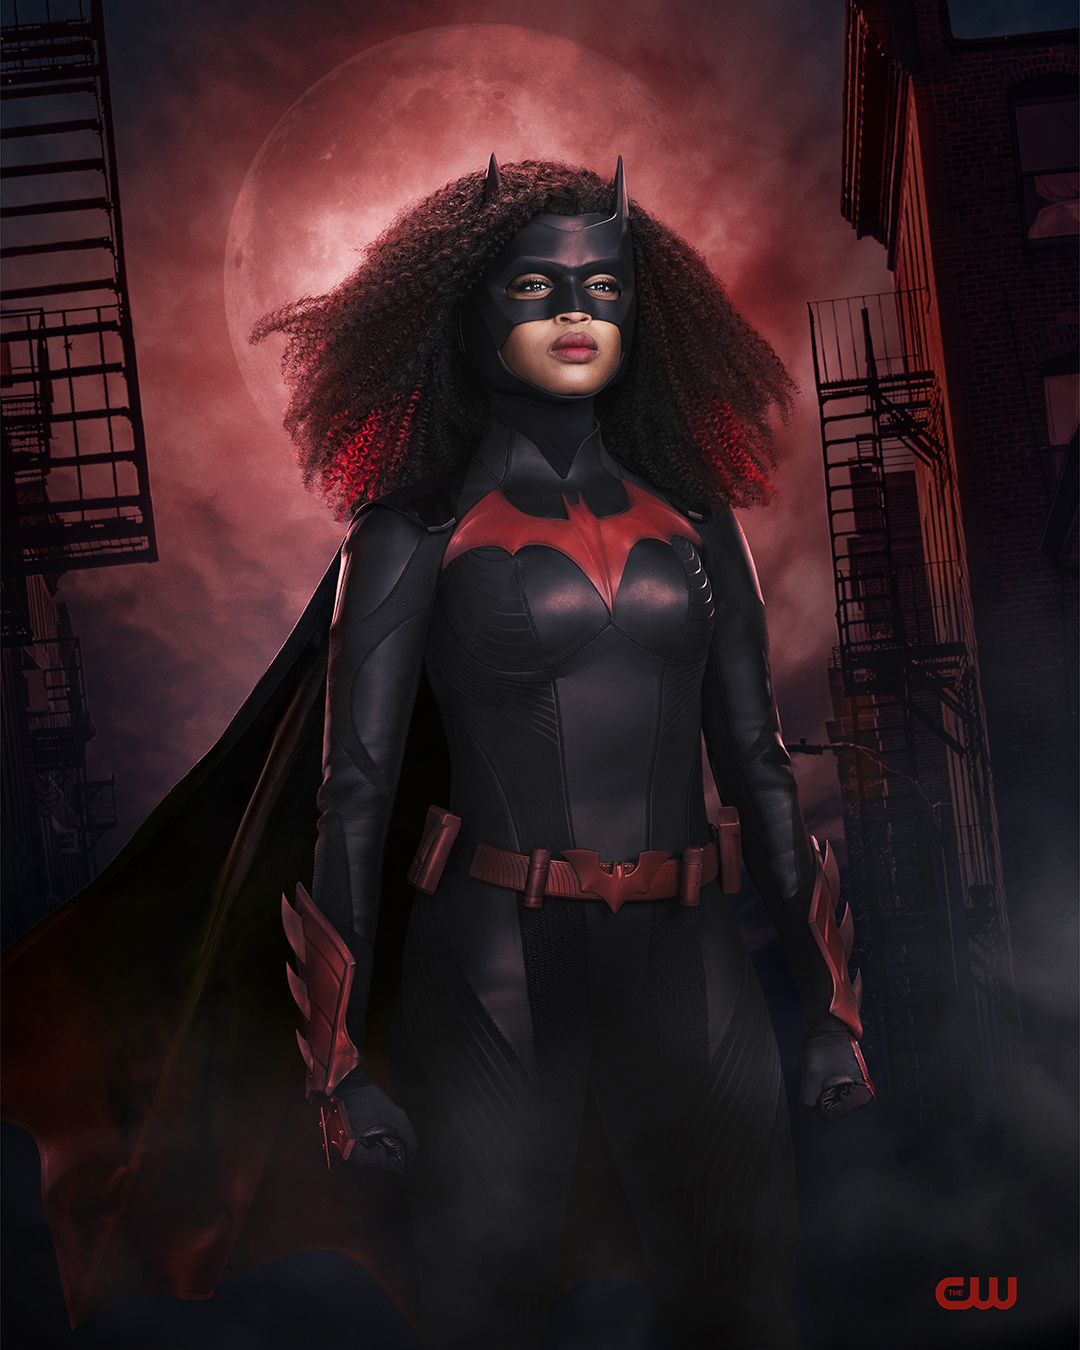 Javicia Leslie as Black Batwoman revealed in stunning photos